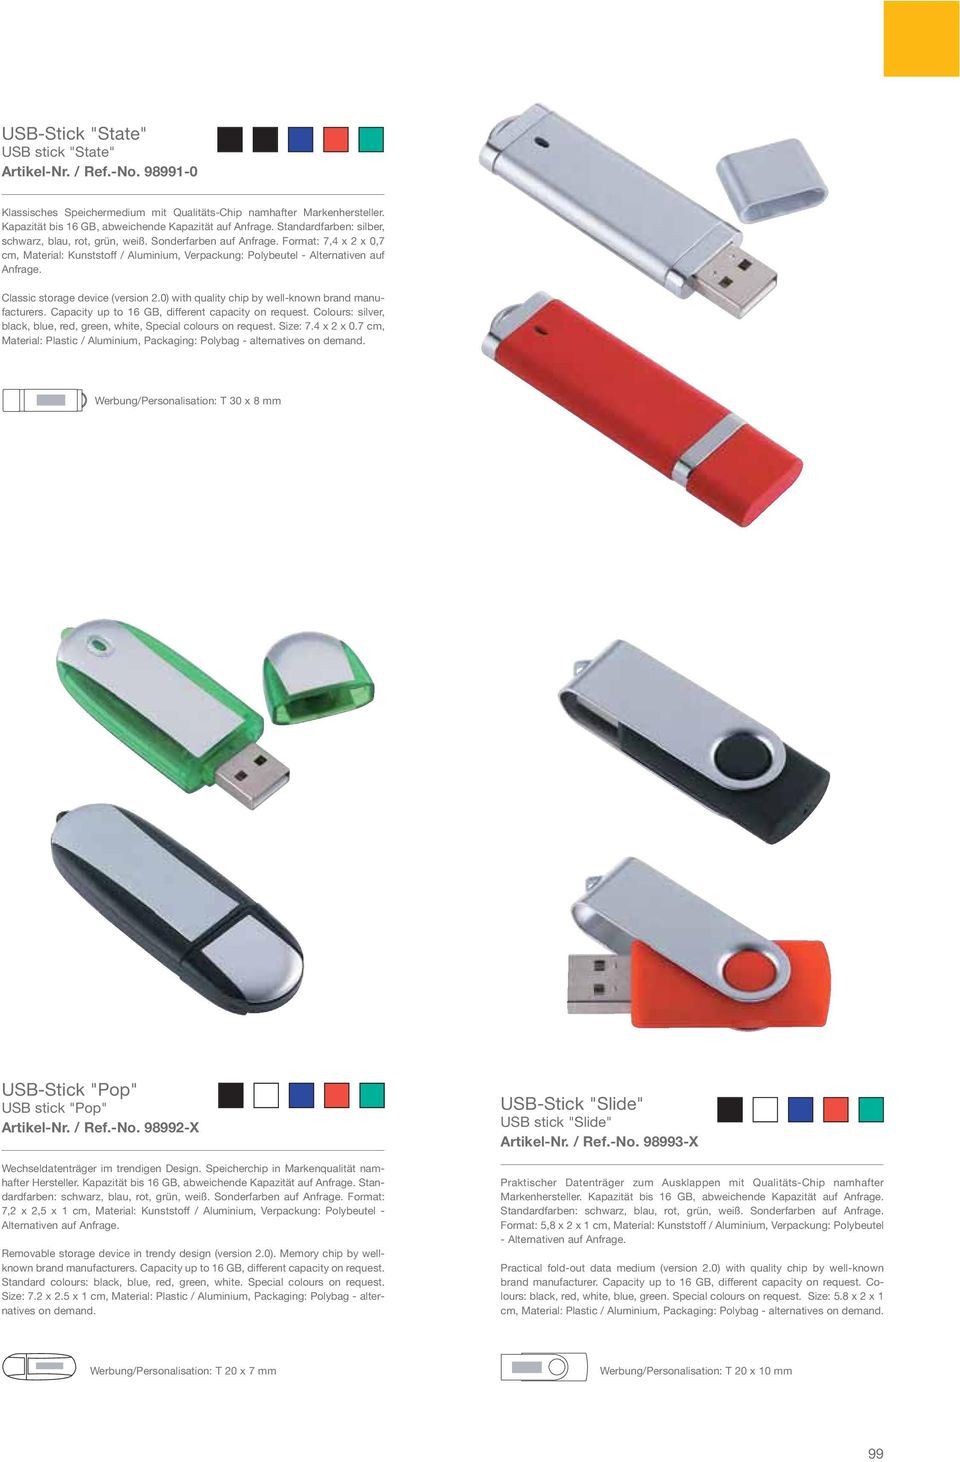 Classic storage device (version 2.0) with quality chip by well-known brand manufacturers. Capacity up to 16 GB, different capacity on request.